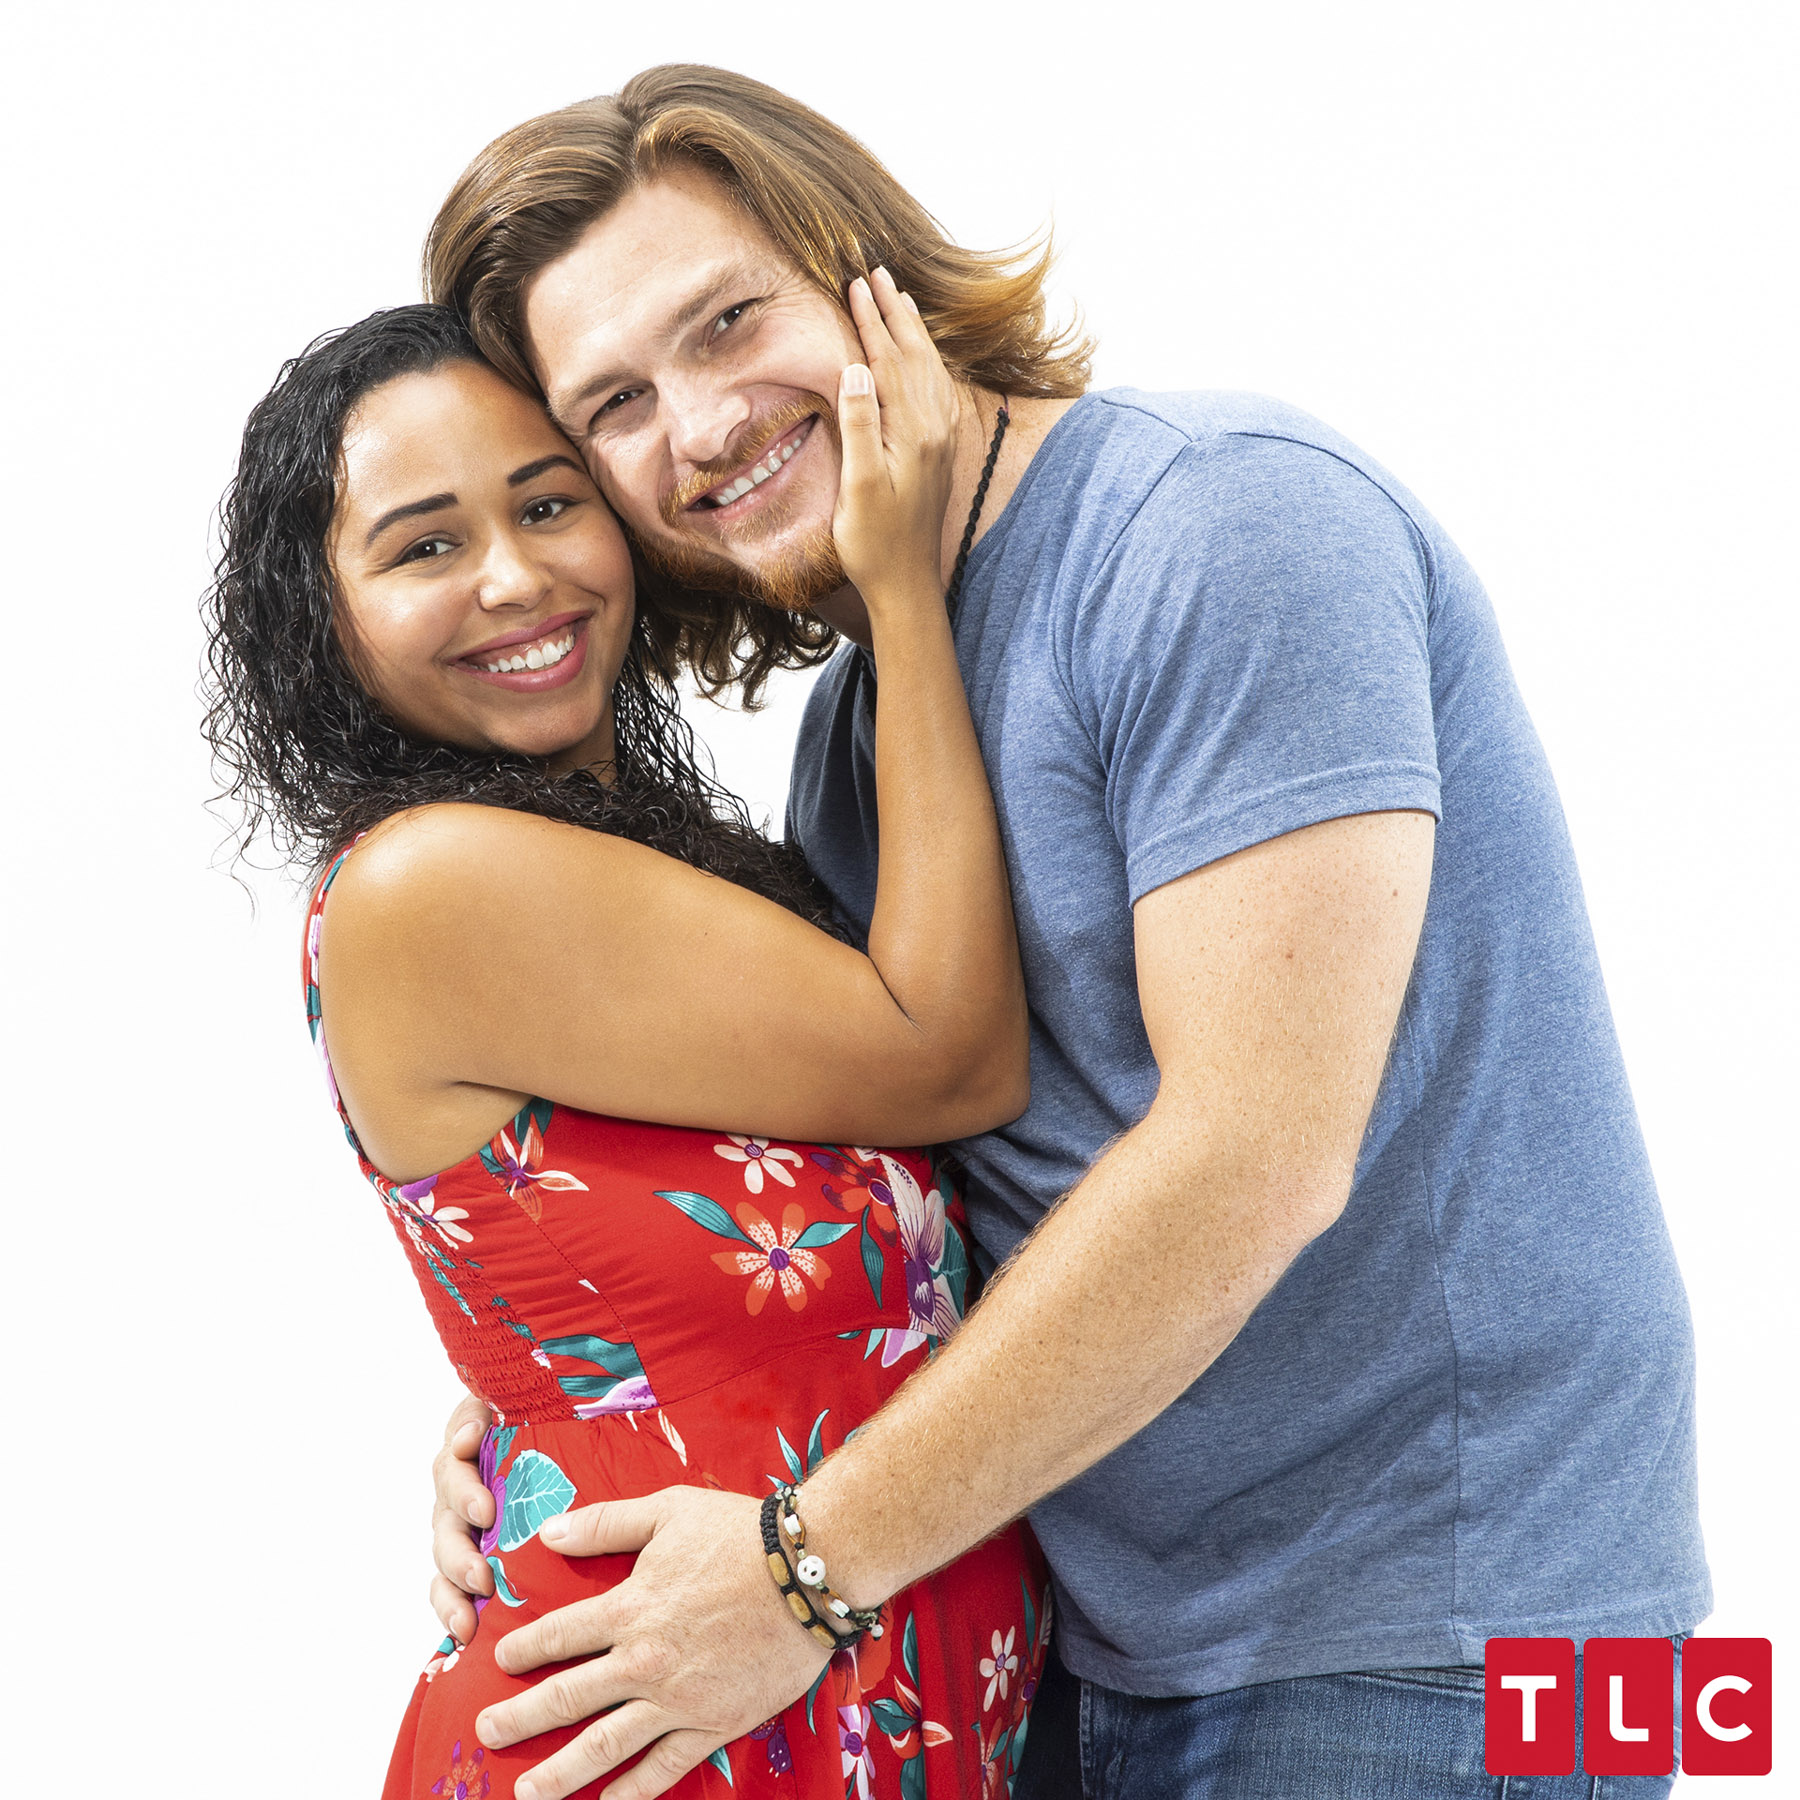 90 day fiance season 7 watch online free